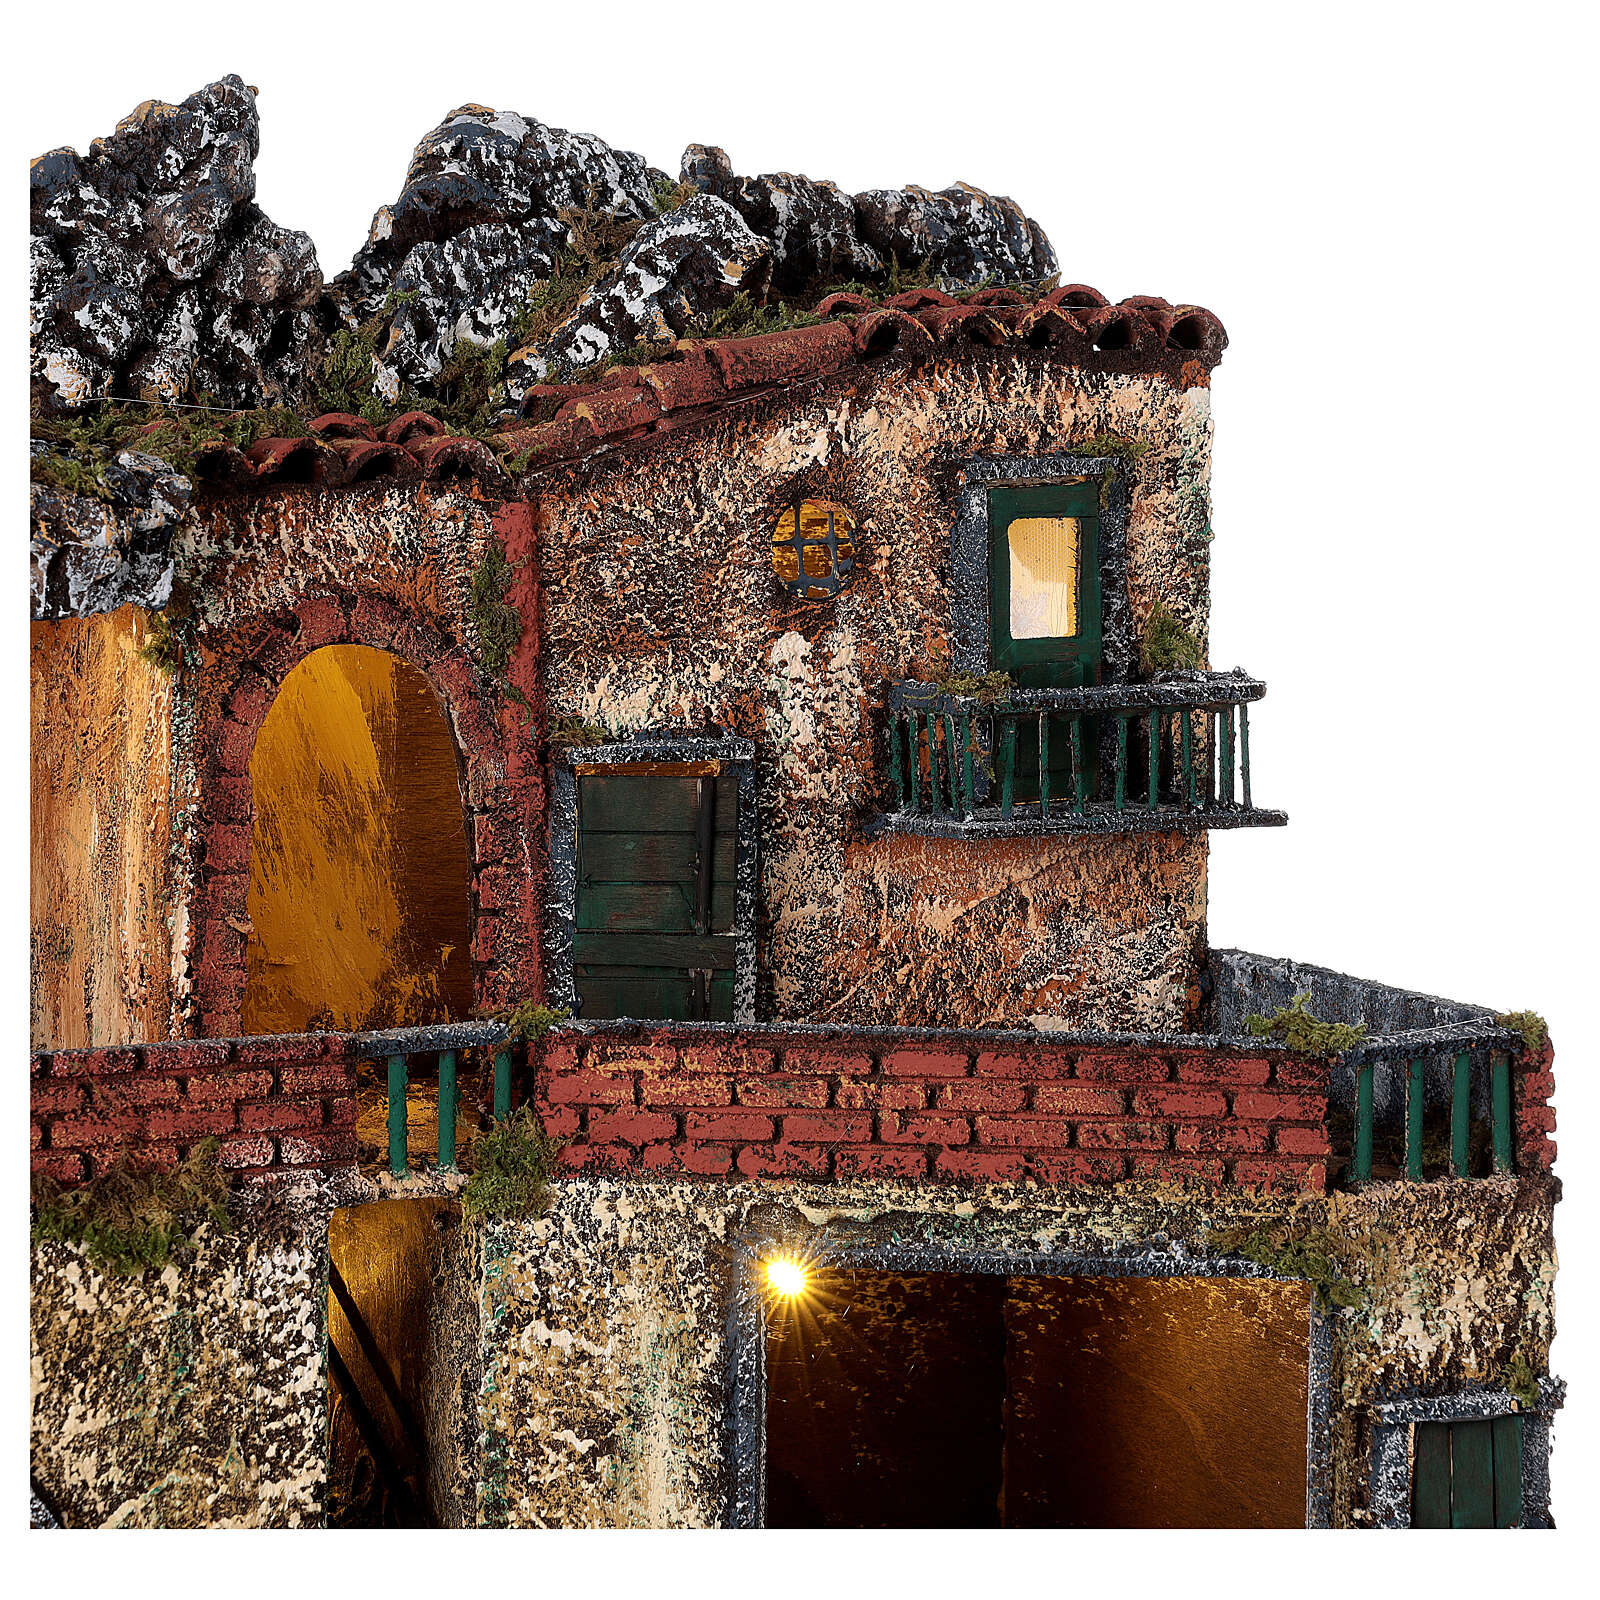 Neapolitan Nativity scene village two floors illuminated 40x50x30 for statues 8-10 cm 4